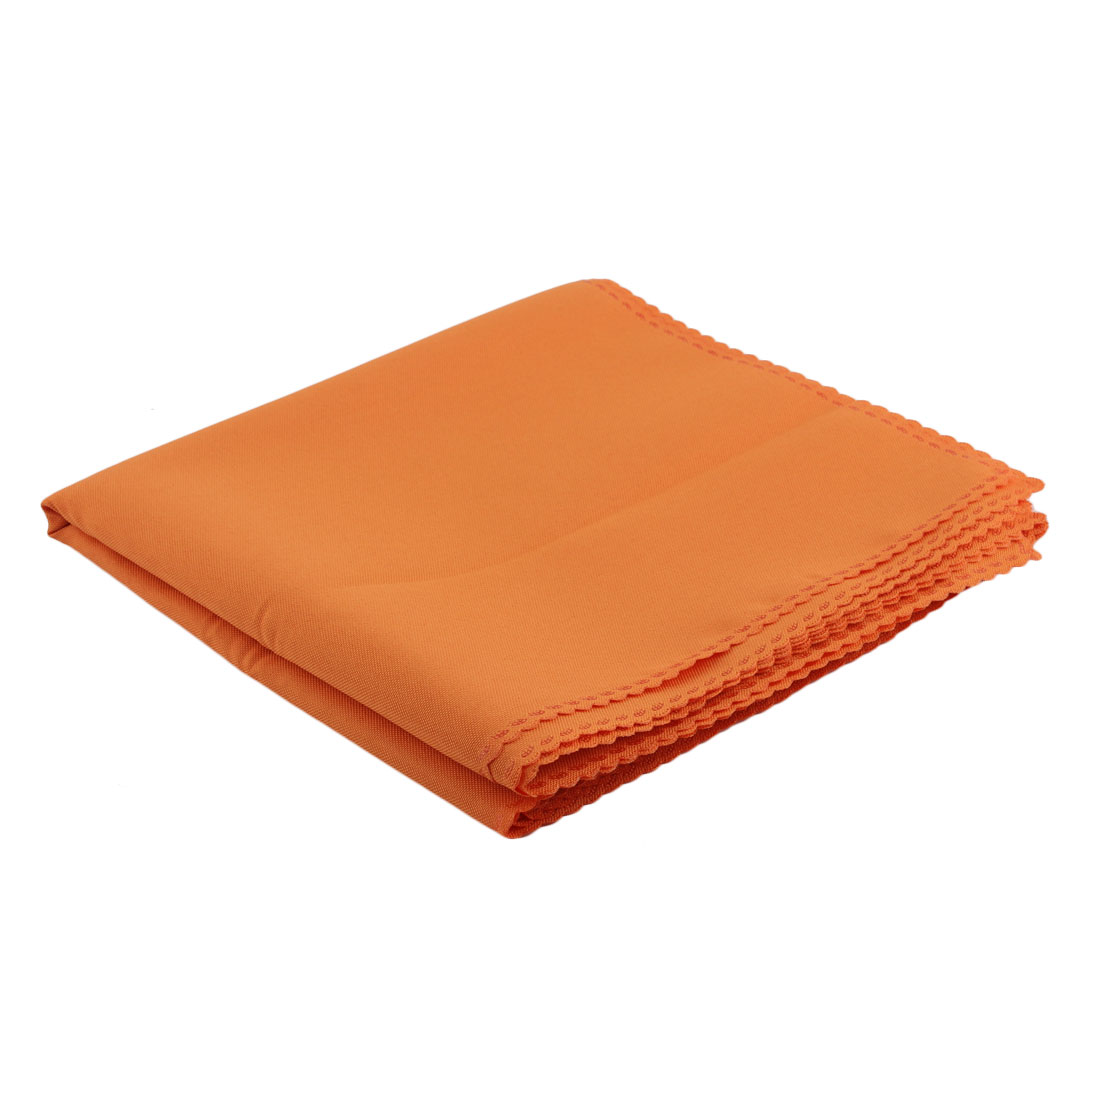 Kitchen Dining Room Fabric Stain-resistant Table Placemat Eat Mat Orange 6 Pcs